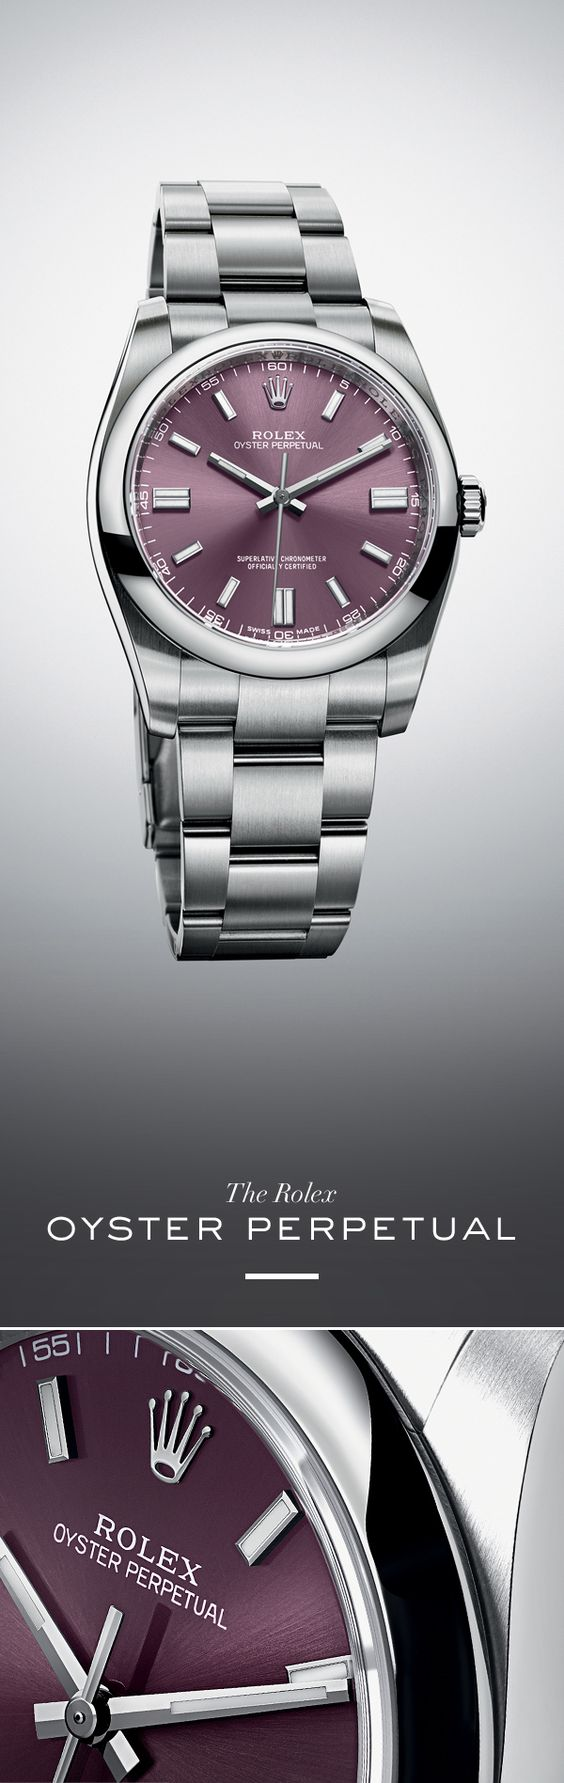 Rolex Oyster Perpetual 36 mm in 904L steel with a domed bezel, red grape dial and Oyster bracelet. #RolexOfficial